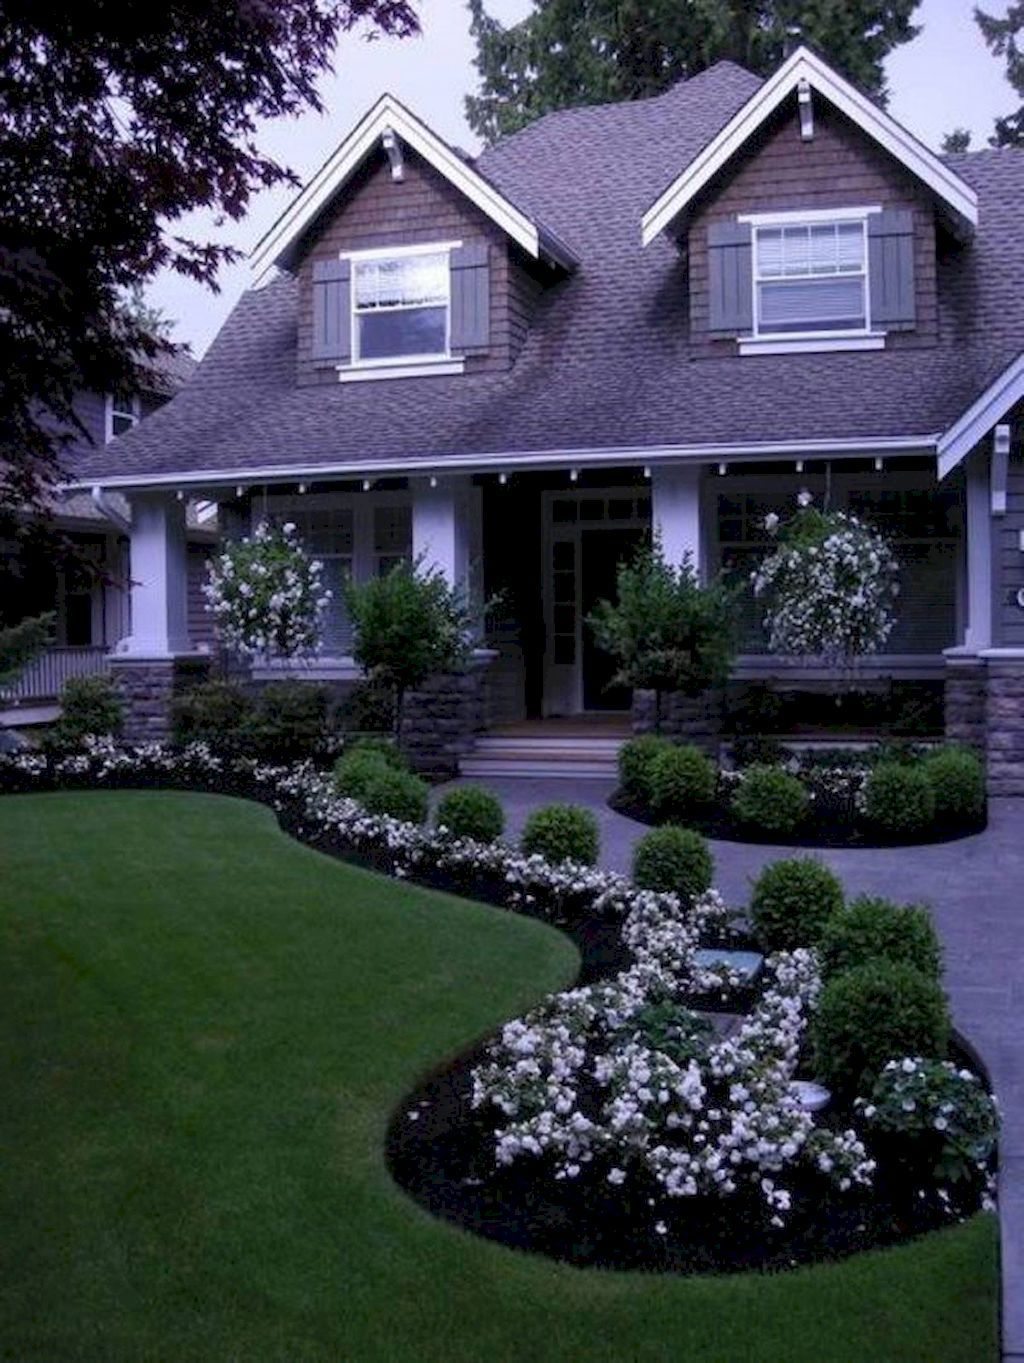 40 beautiful front yard landscaping ideas yard for Front yard landscaping ideas